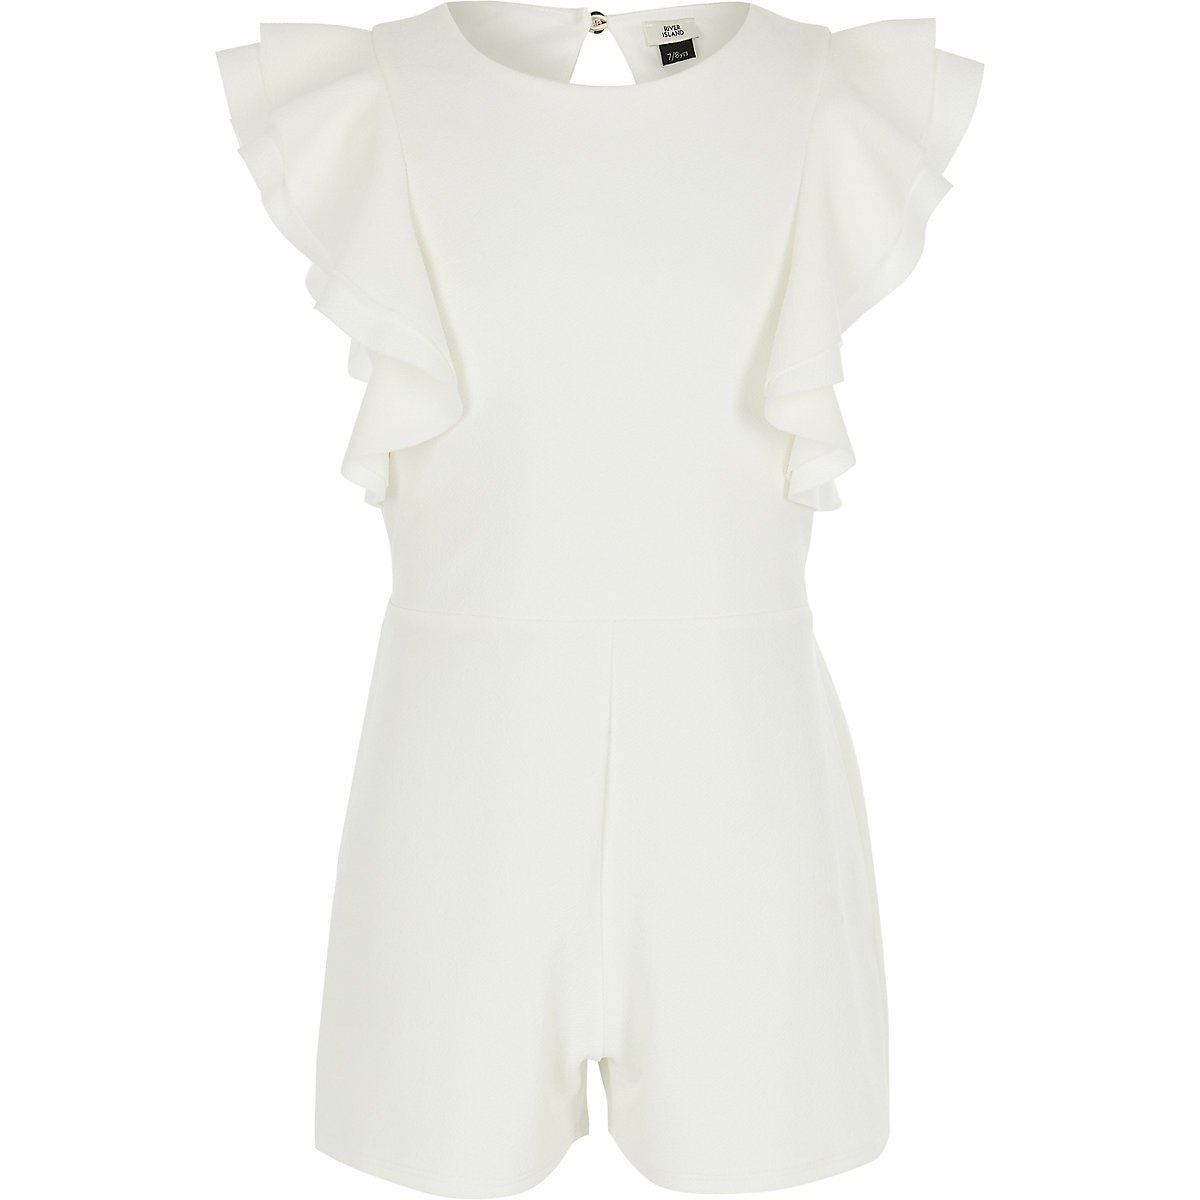 Girls white ruffle romper - Rompers - Rompers & Jumpsuits - girls